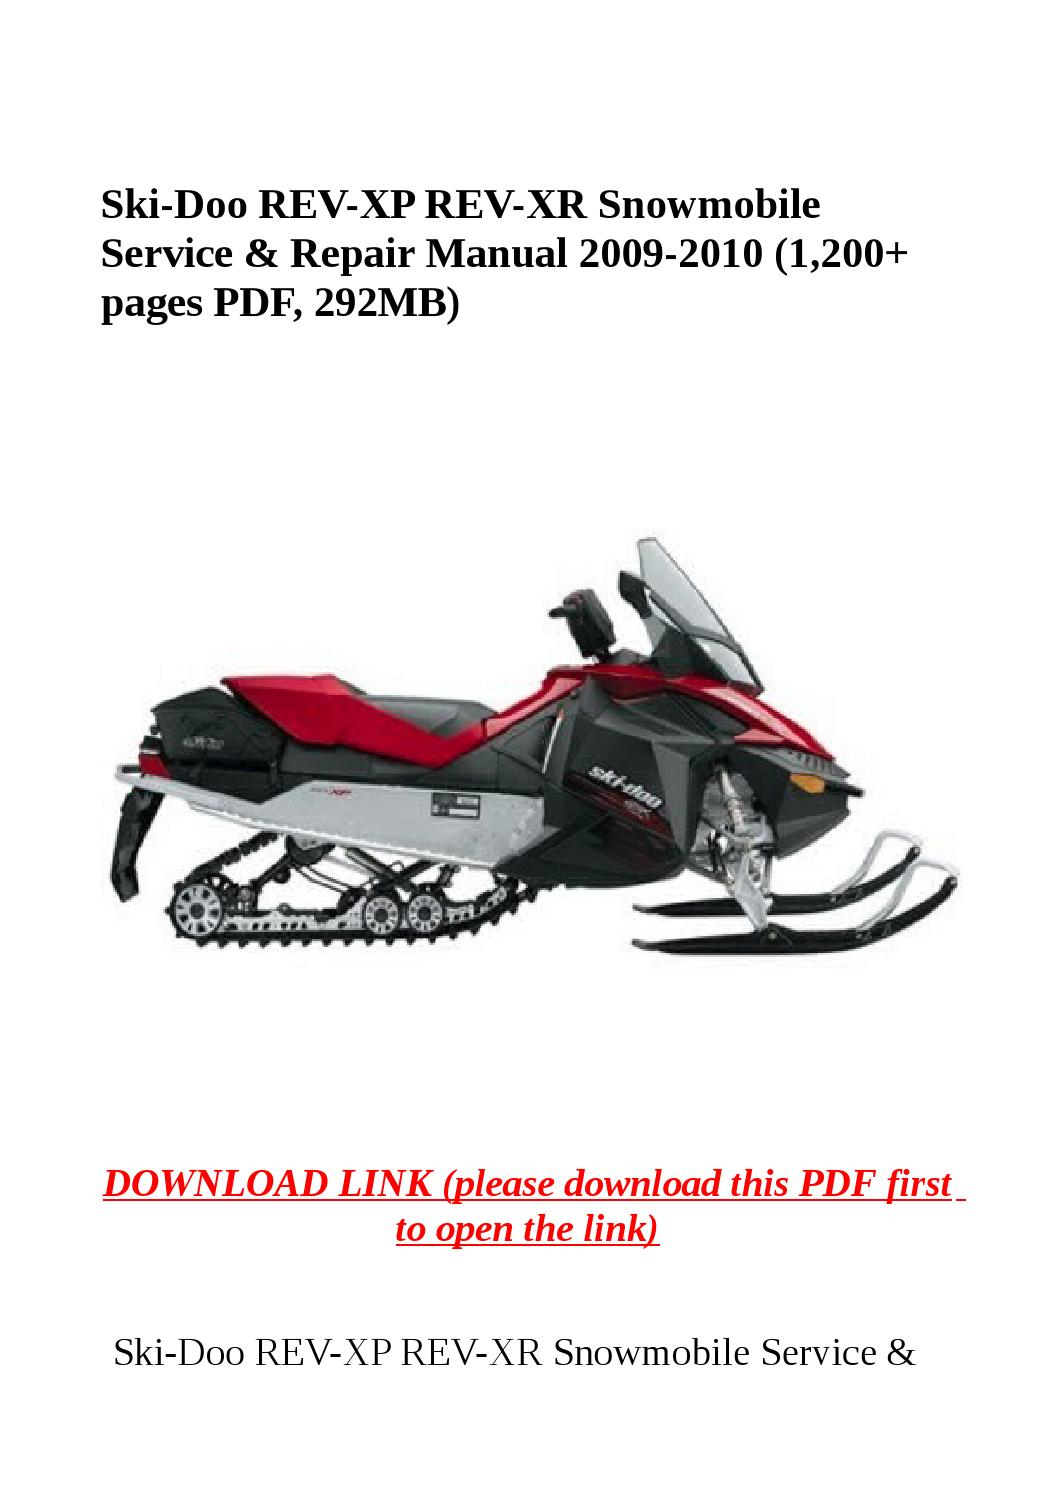 2008 ski doo xp wiring diagram 2008 image wiring rev xp wiring diagram wiring diagrams and schematics on 2008 ski doo xp wiring diagram